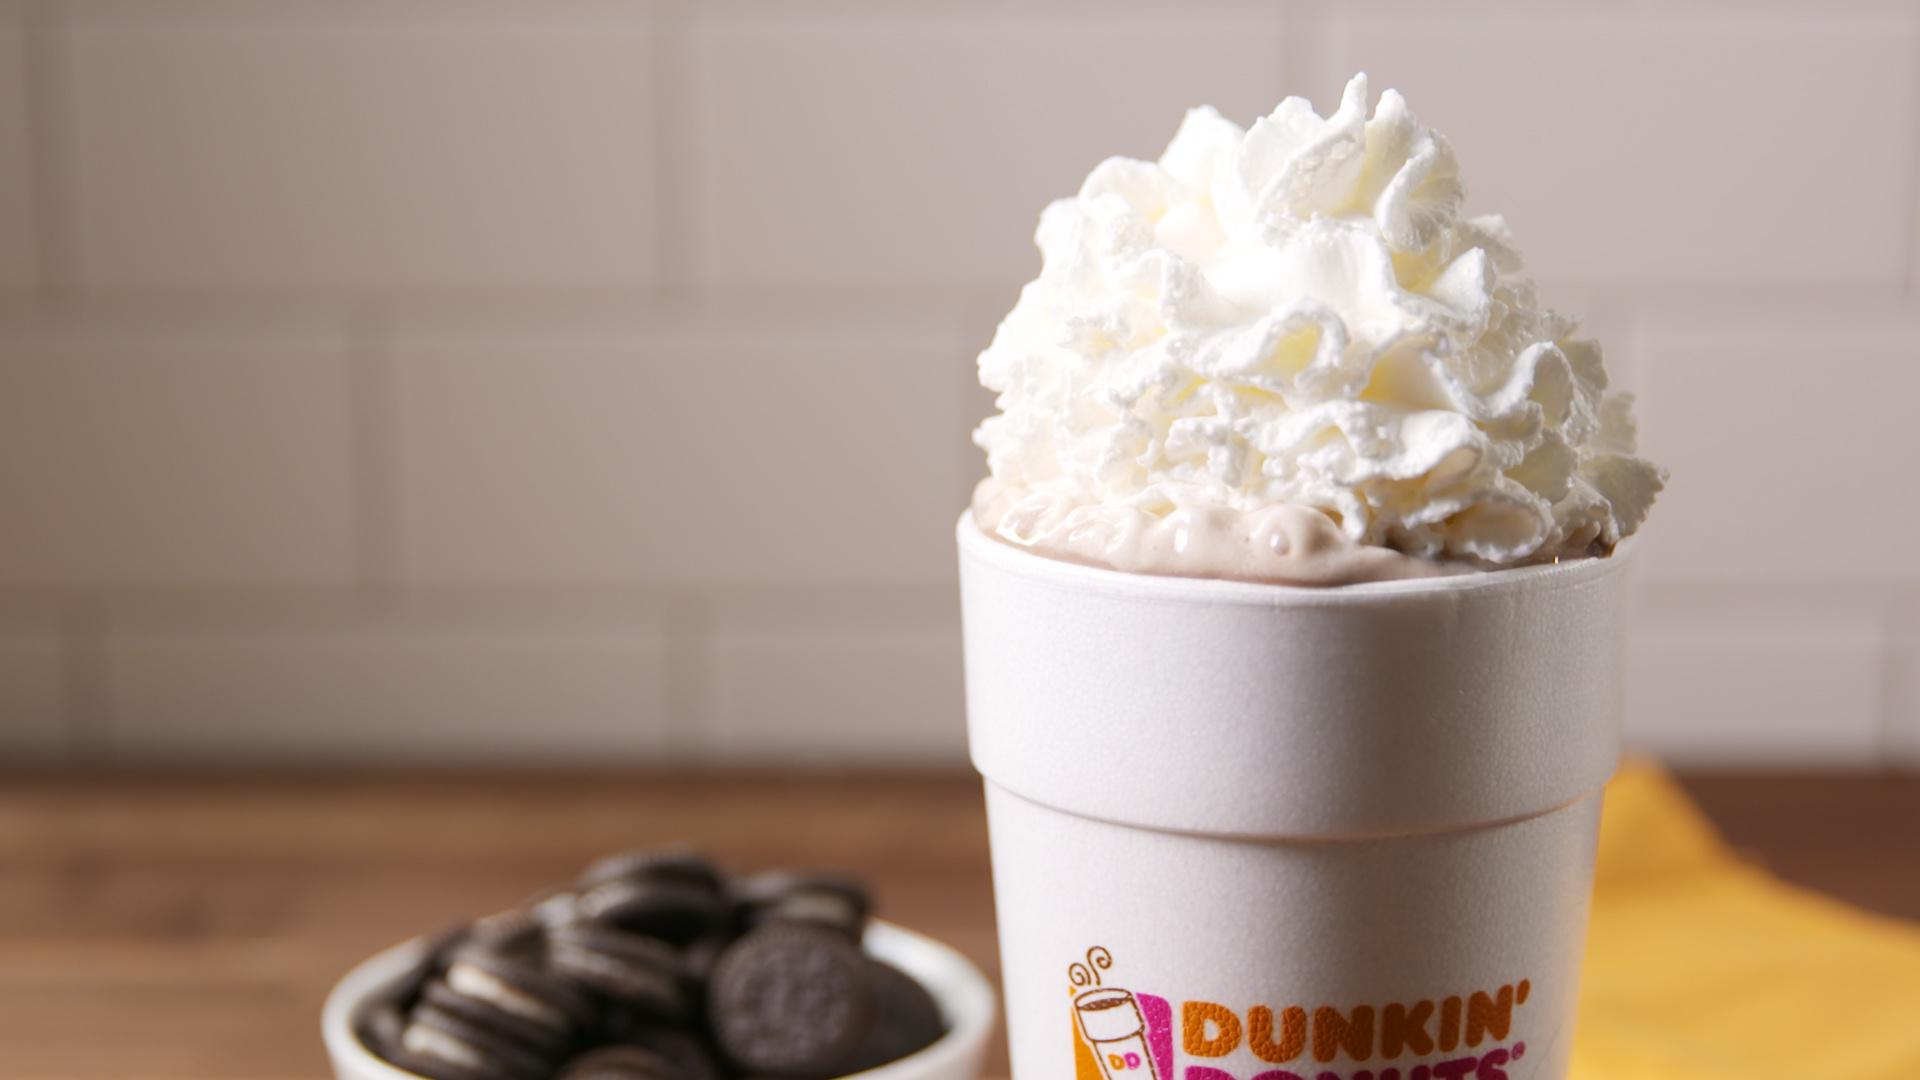 Dunkin' Donuts New Hot Chocolate Flavor Is The Drink You've Been Waiting For